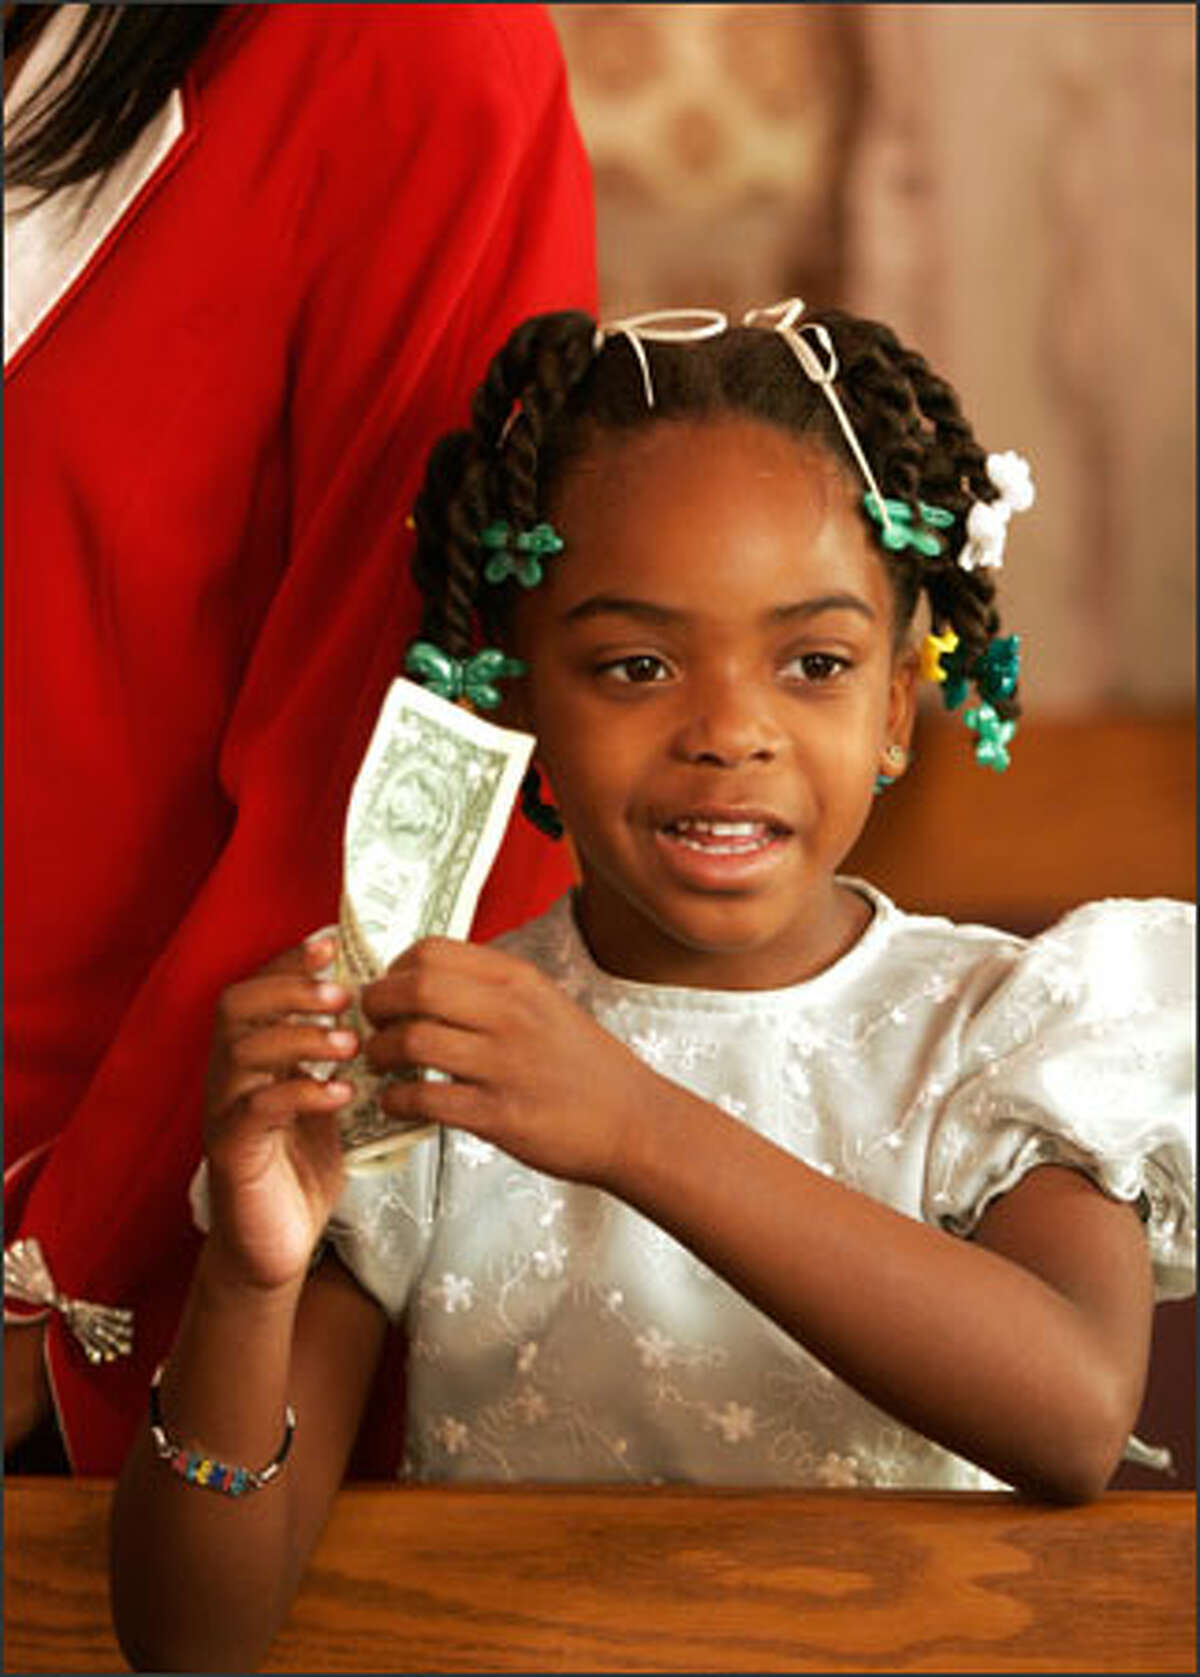 Alexis Rogers, 6, holds a dollar for a tithe during Sunday's service at the Unity Church of God in Christ. The church also was raising money to help with the Katrina relief effort in the South.